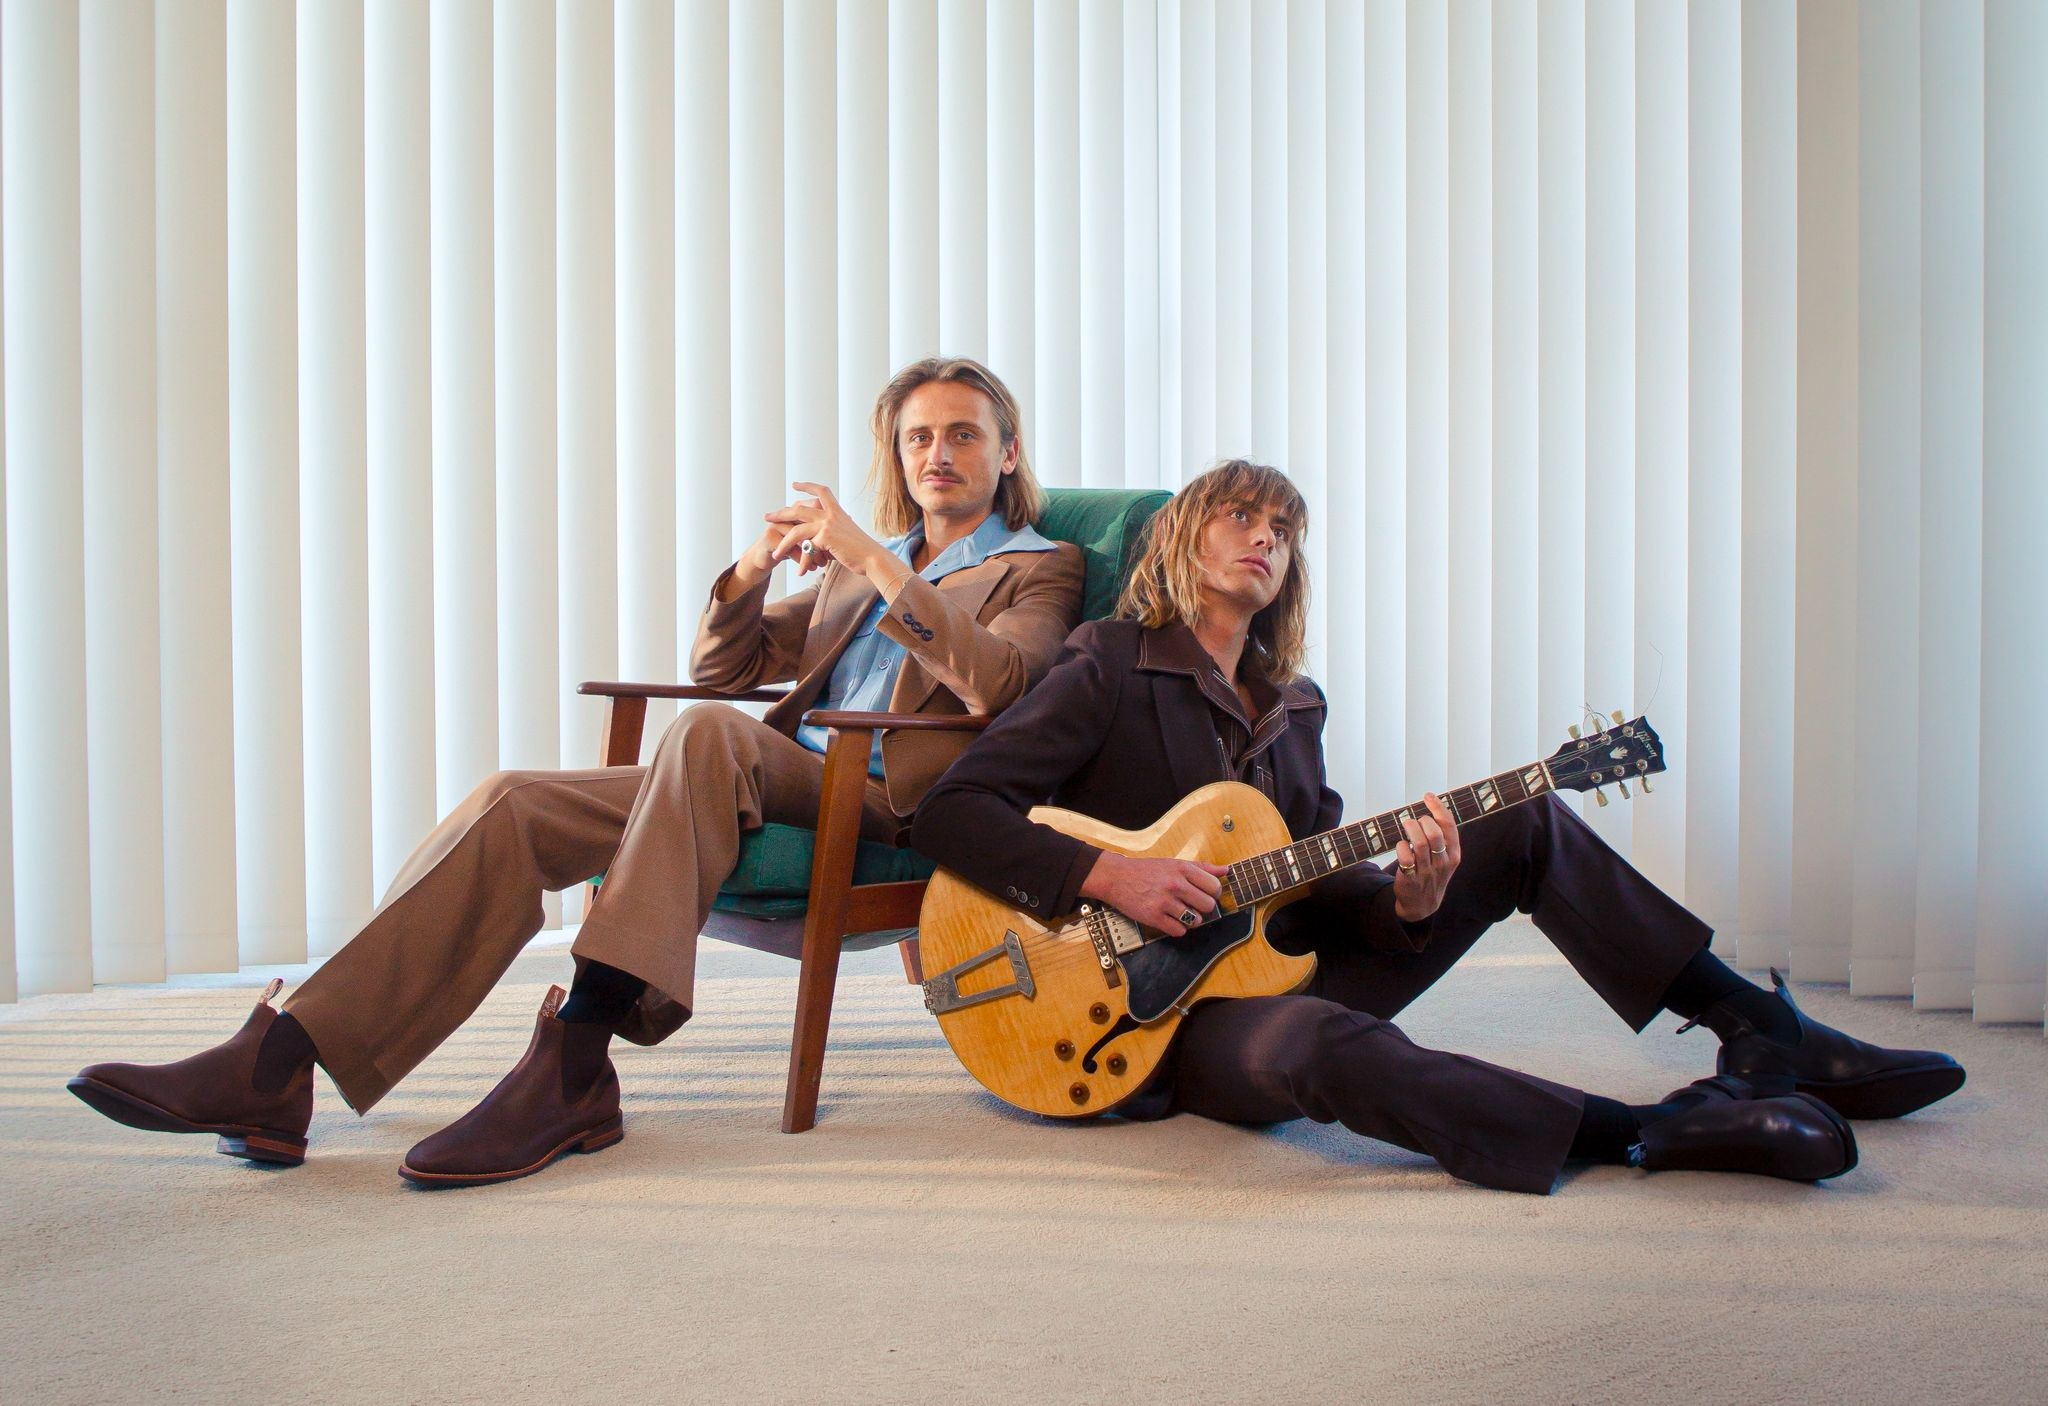 Lime Cordiale Take Out This Week's Triple J Feature Album With '14 Steps To A Better You'